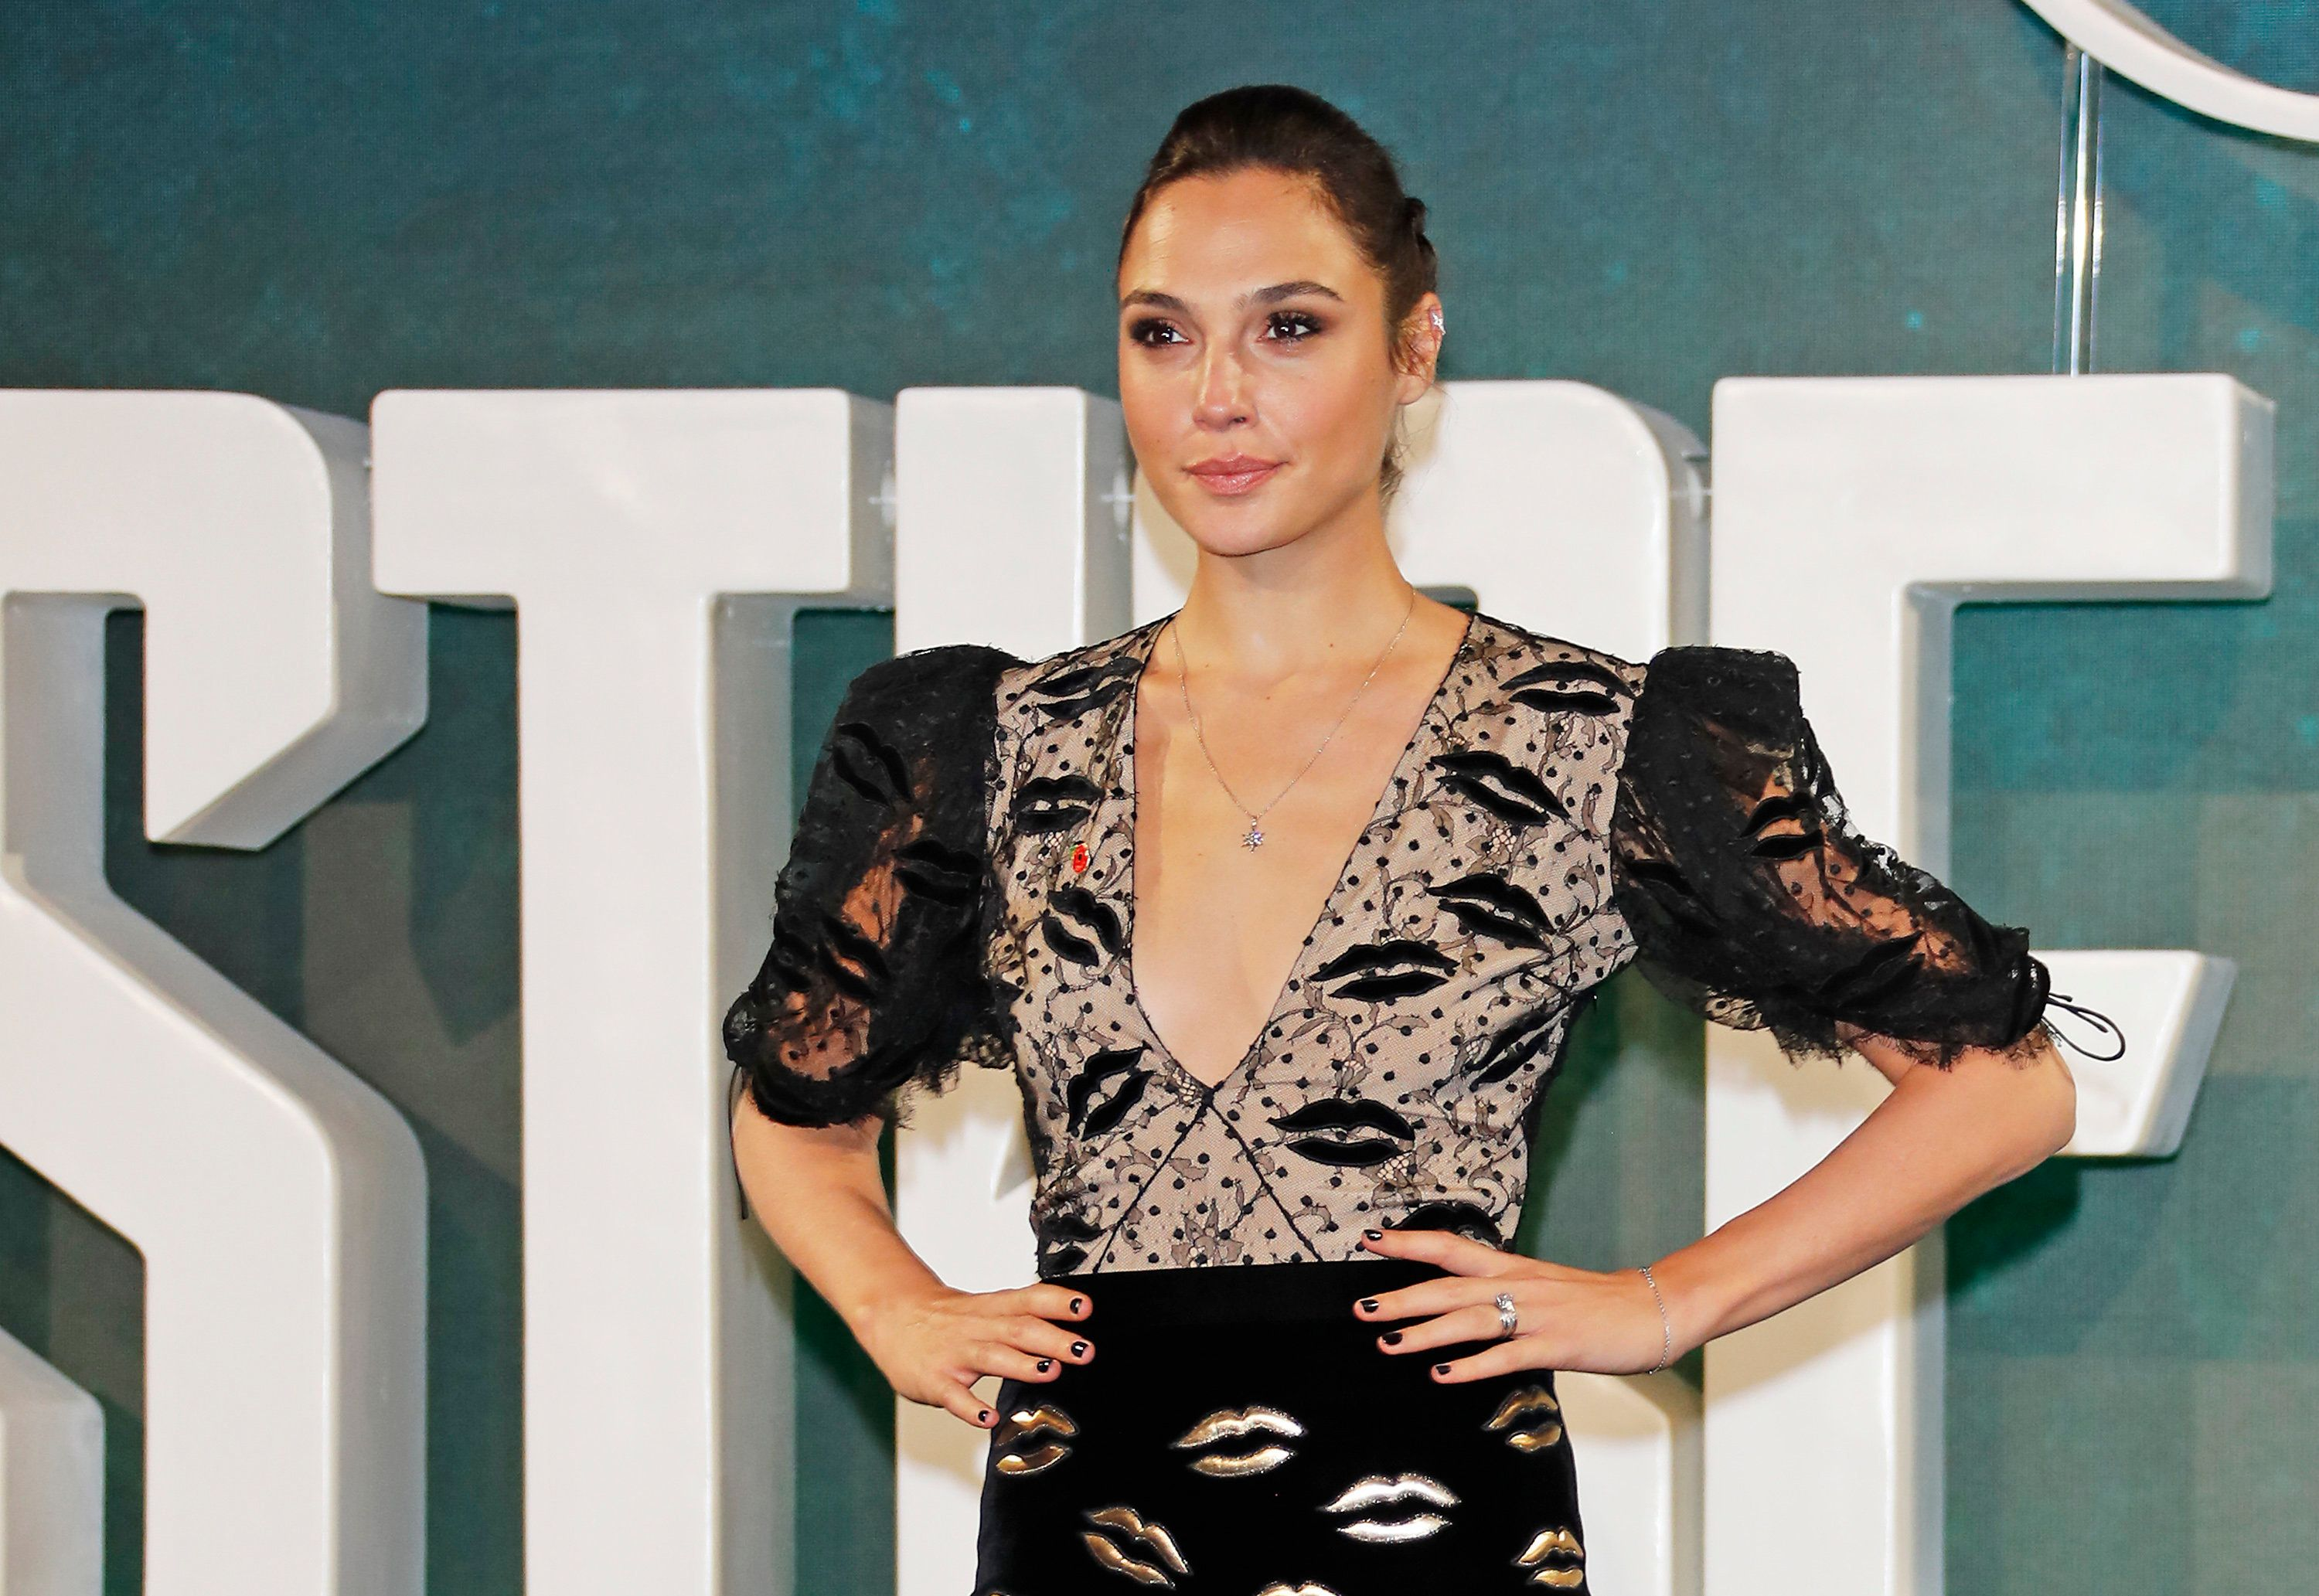 LONDON, ENGLAND - NOVEMBER 04:  Gal Gadot attends the 'Justice League' photocall at The College on November 4, 2017 in London, England.  (Photo by David M. Benett/Dave Benett/WireImage)